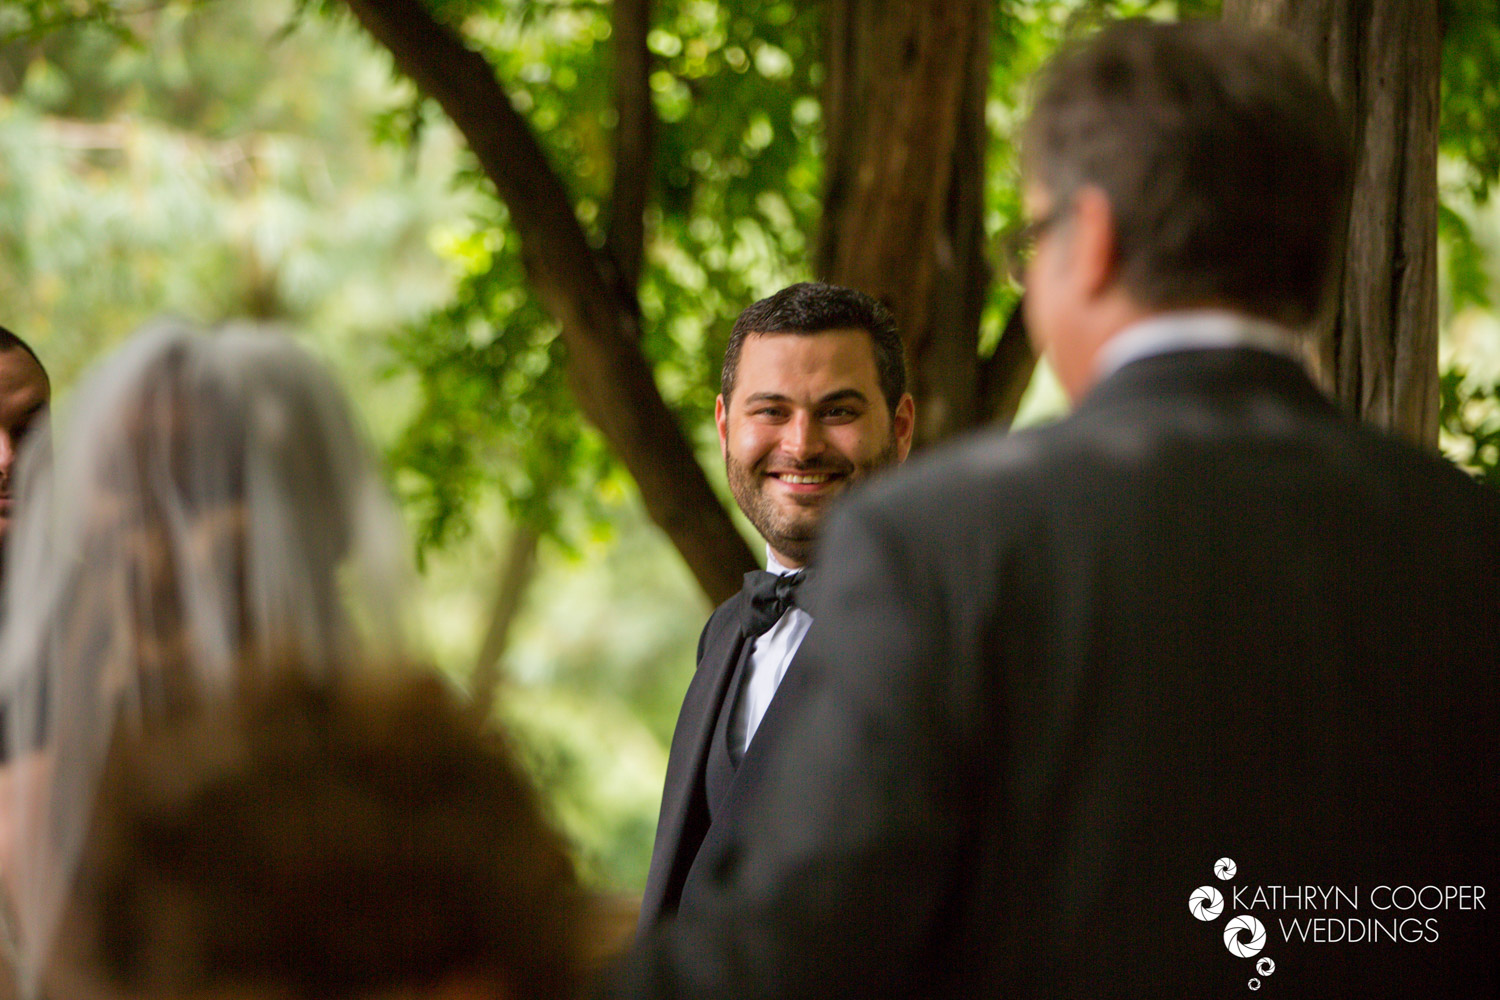 Groom sees bride for the first time - first look in Central Park